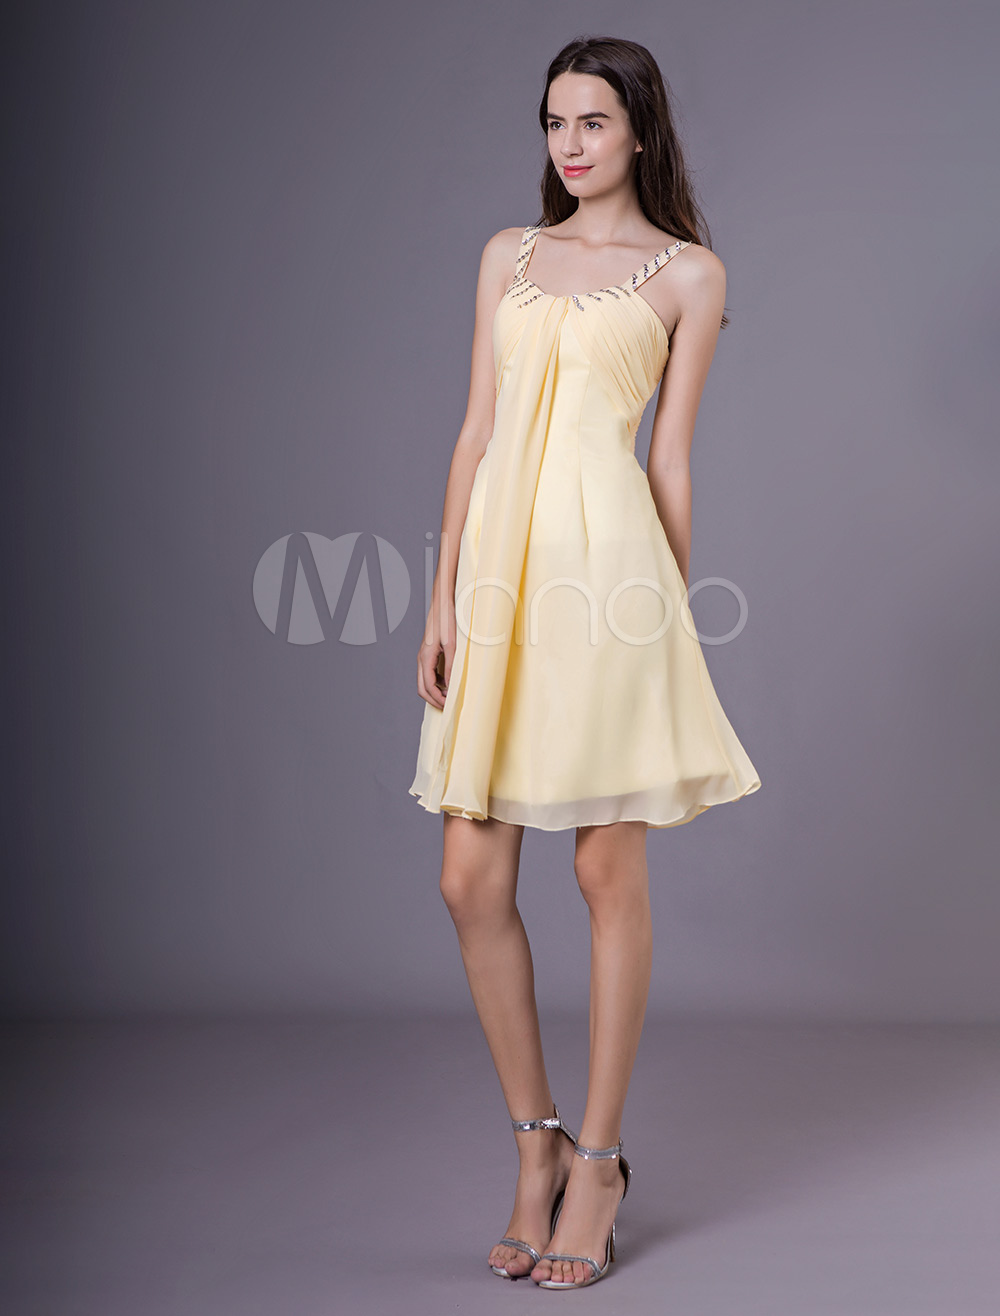 Buy Daffodil Bridesmaid Dress with CHiffon A-line Straps Neck Beading Style Milanoo for $104.39 in Milanoo store